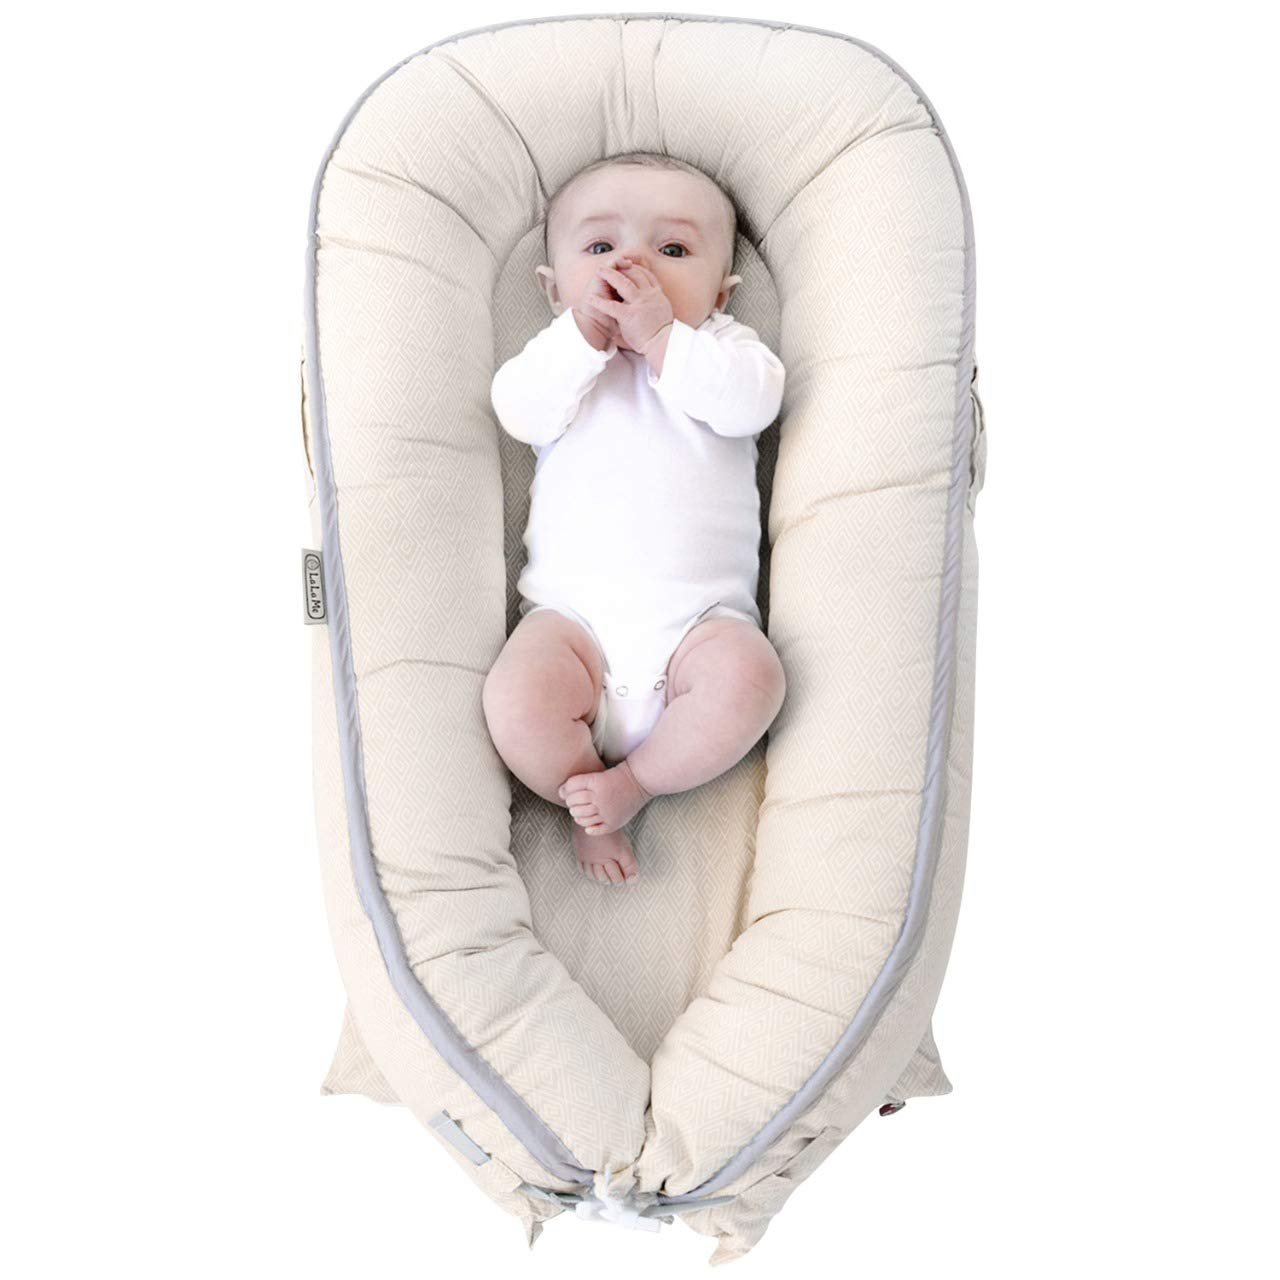 LaLaMe Organic Baby Nest Crib, Baby Lounger Pillow, Water-Resistant Co-Sleeping Newborn Bassinet, for Boys and Girls Infants, Great for Baby Shower